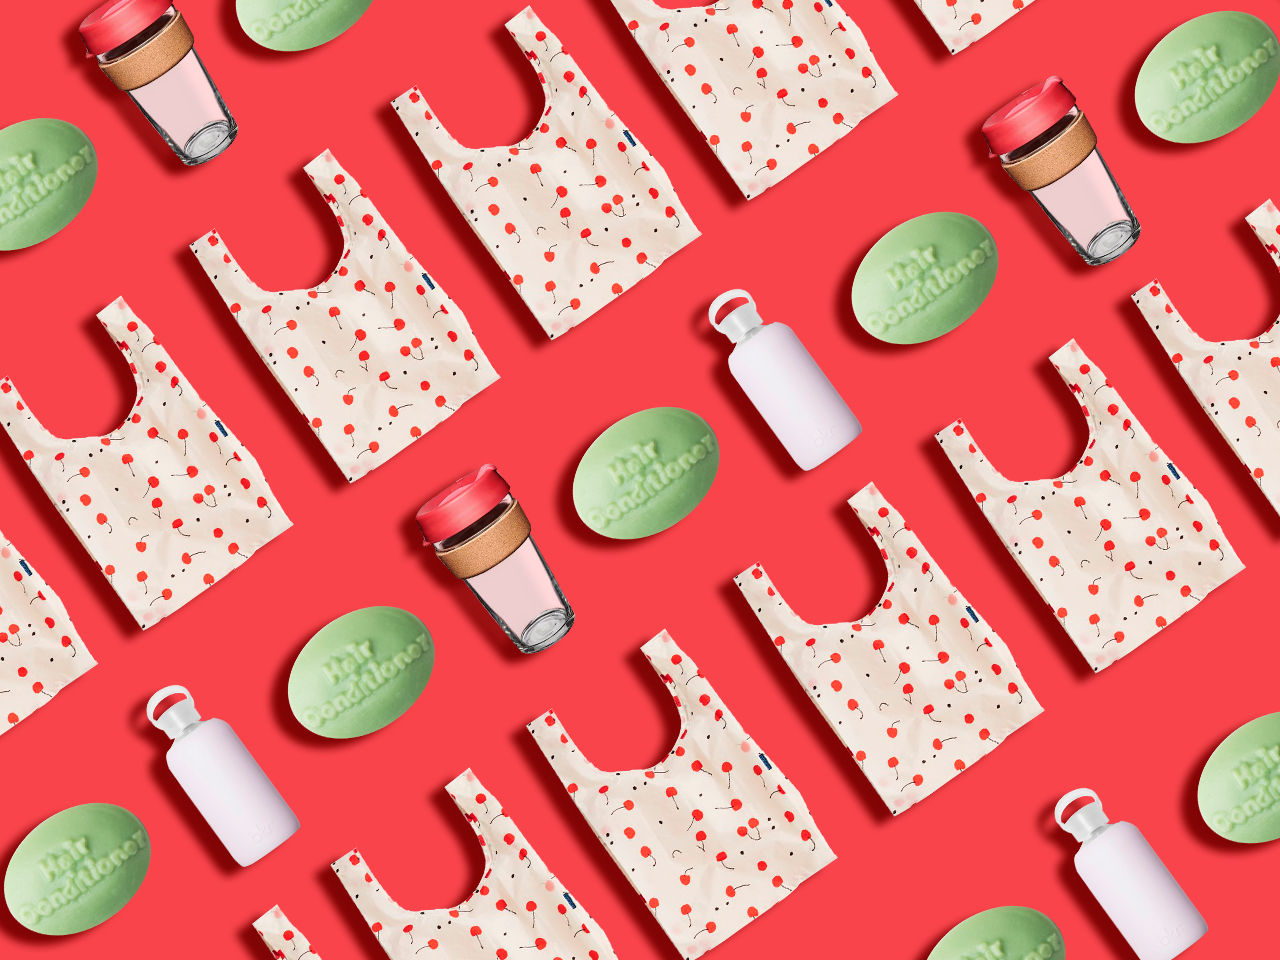 Re-usable products that can help you reduce your plastic waste: a cherry Baggu tote, Lush conditioner bar, KeepCup, and Bkr water bottle